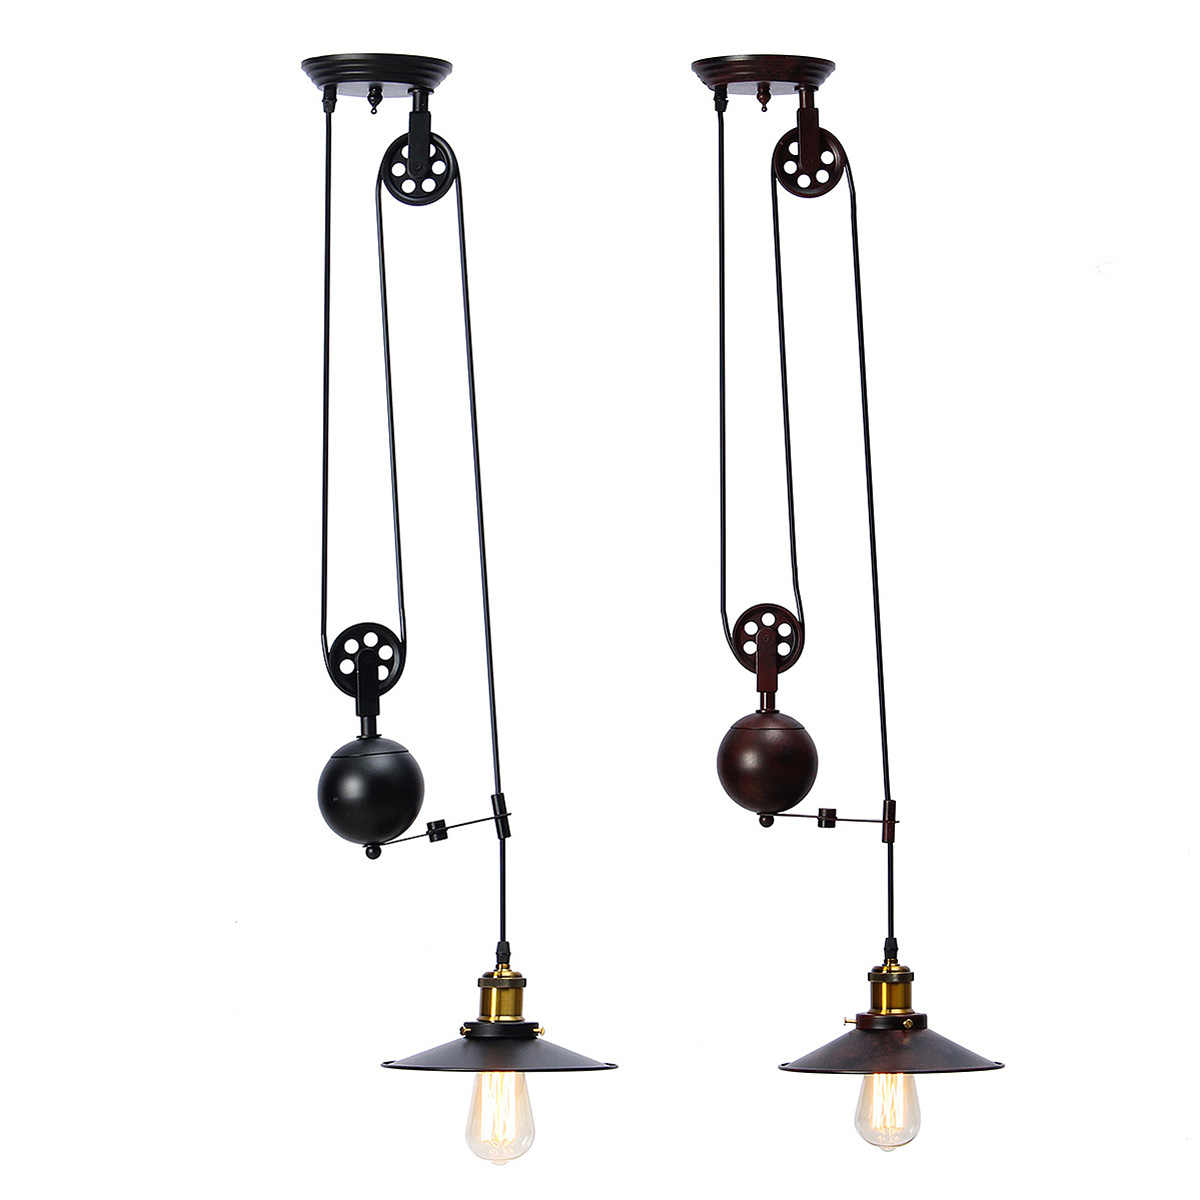 AC110-240V E27 Single Vintage Loft Retro Pendant Light Sconce Hanging Pulley Lamp Fixtures Restaurant Bar Home Decoration